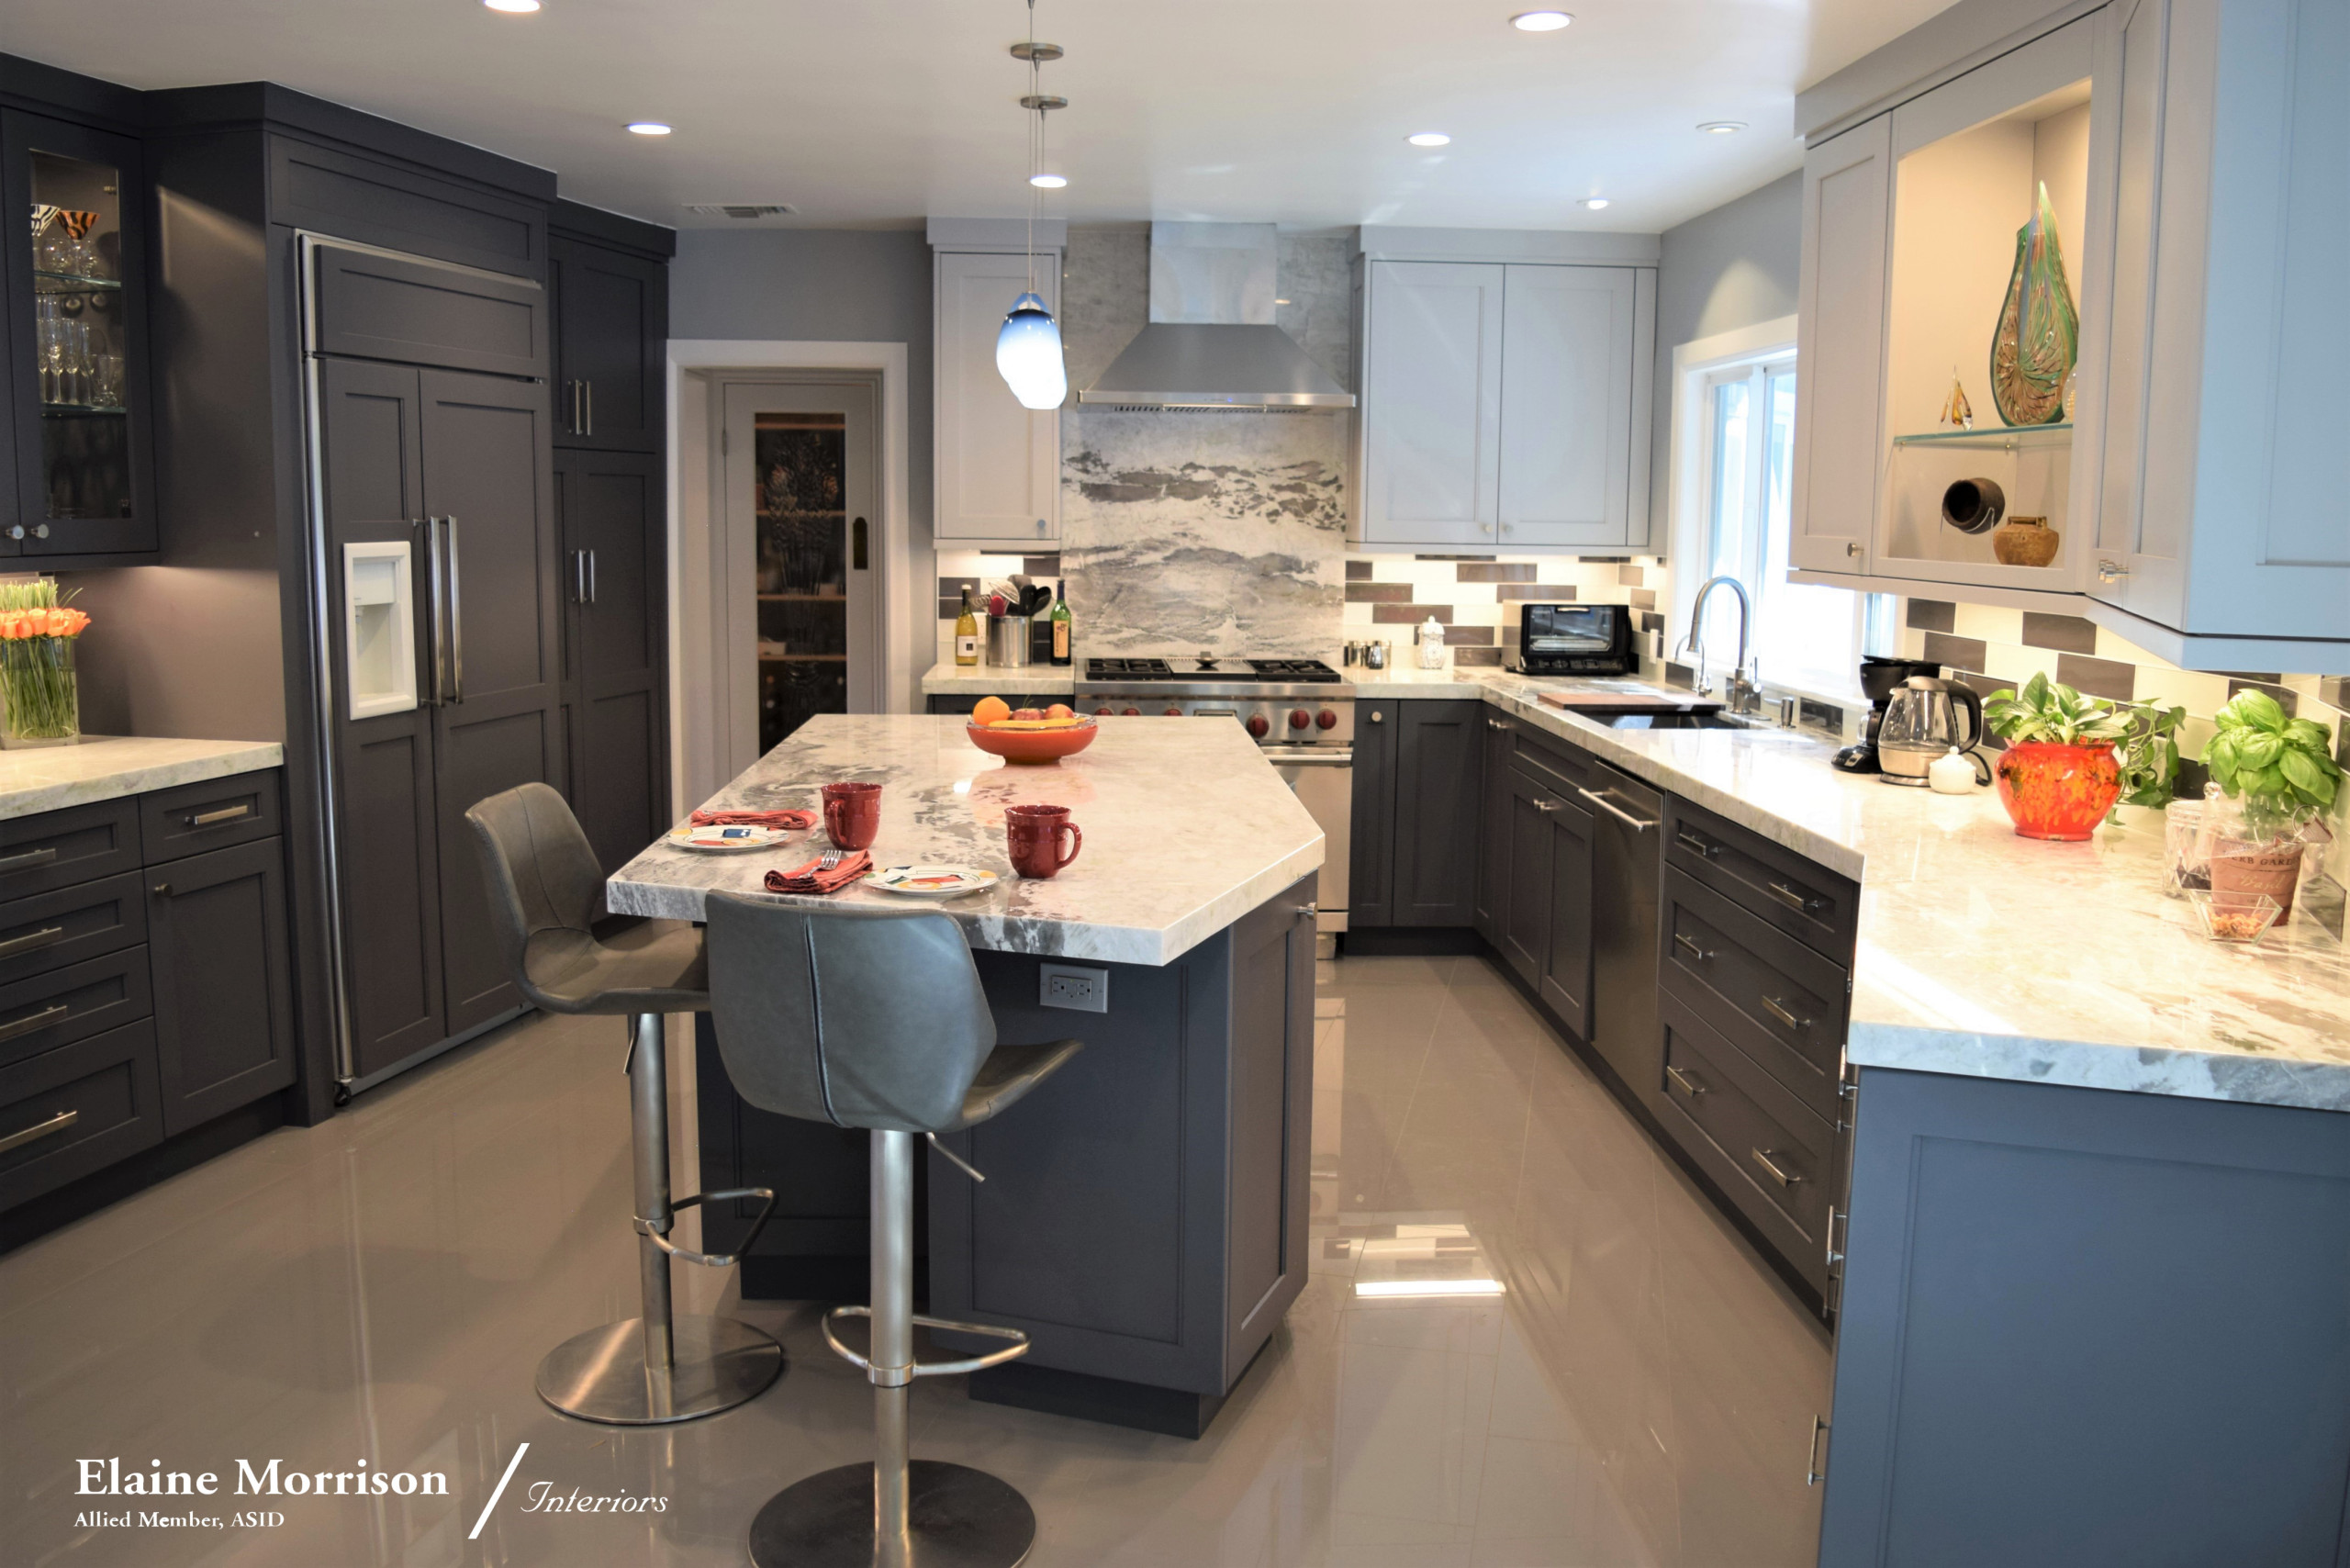 My Transitional Kitchen Remodel for a Client in Sherman Oaks, Ca.